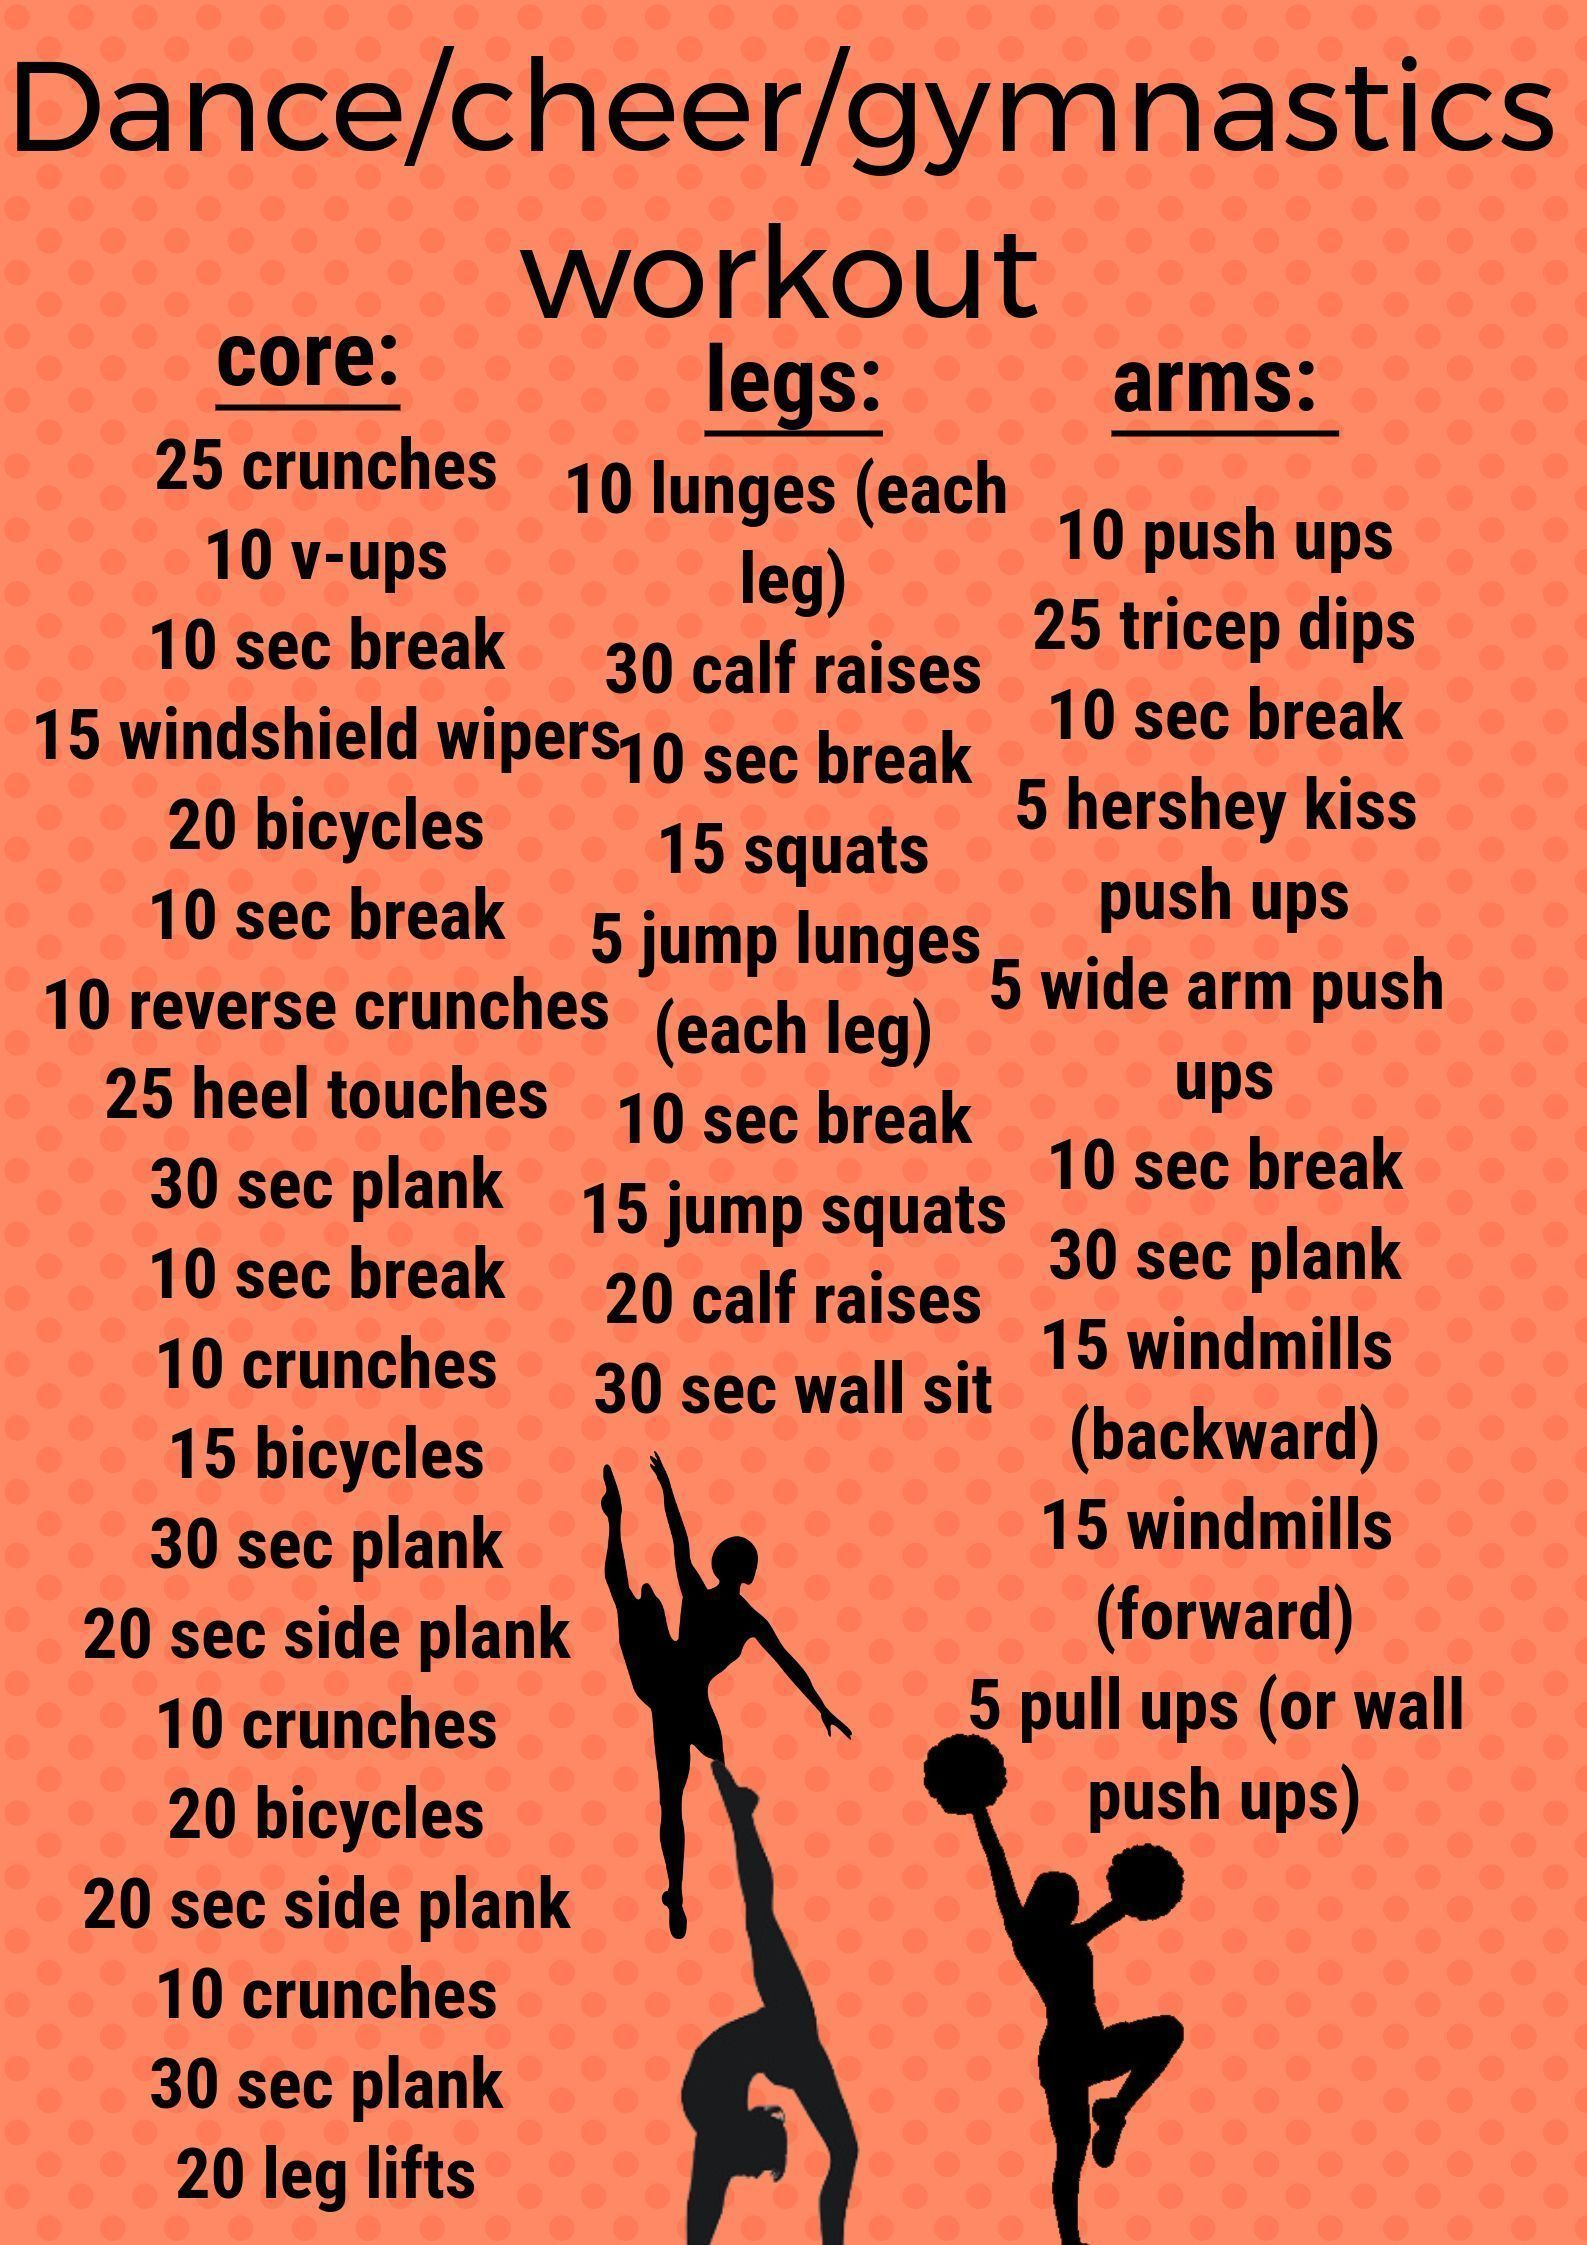 Gymnastics workout, Dancer workout, Cheer workouts, Cheerleading workouts, Dance workout, Flexibility workout - gymnast  I am a dancer and a cheerleader and I do this 6 days a week  -  #Gymnasticsworkout #exercise6daysaweek #cheerworkouts Gymnastics workout, Dancer workout, Cheer workouts, Cheerleading workouts, Dance workout, Flexibility workout - gymnast  I am a dancer and a cheerleader and I do this 6 days a week  -  #Gymnasticsworkout #exercise6daysaweek #cheerworkouts